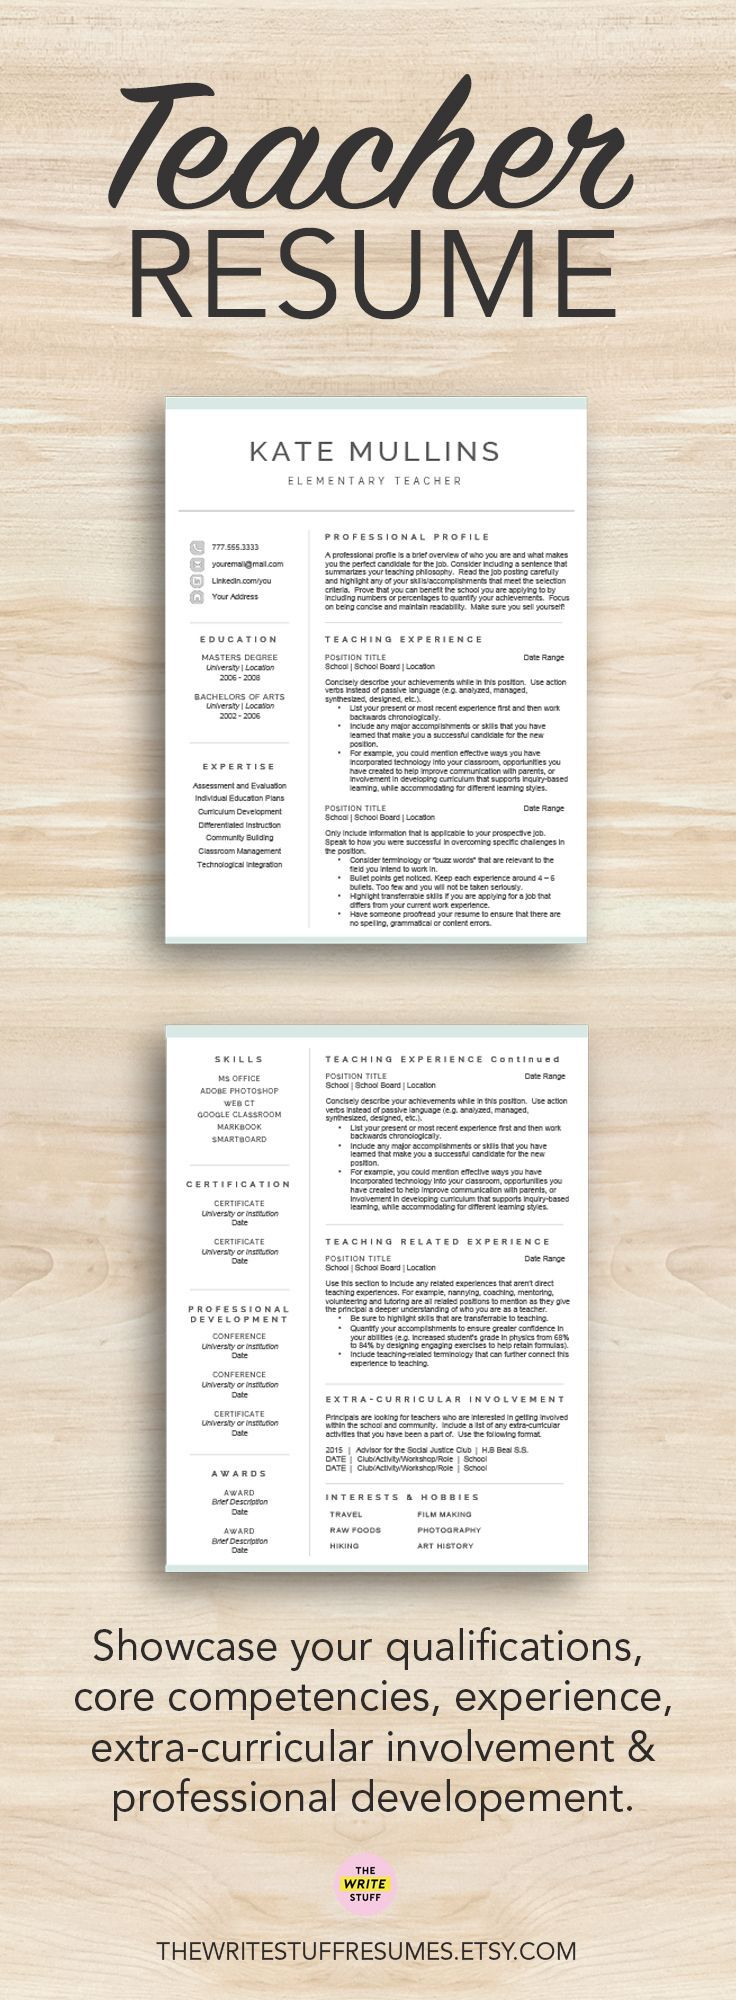 Teacher resume template for Word & Pages 1 2 and 3 page CV template Resume for teachers Educator cover letter